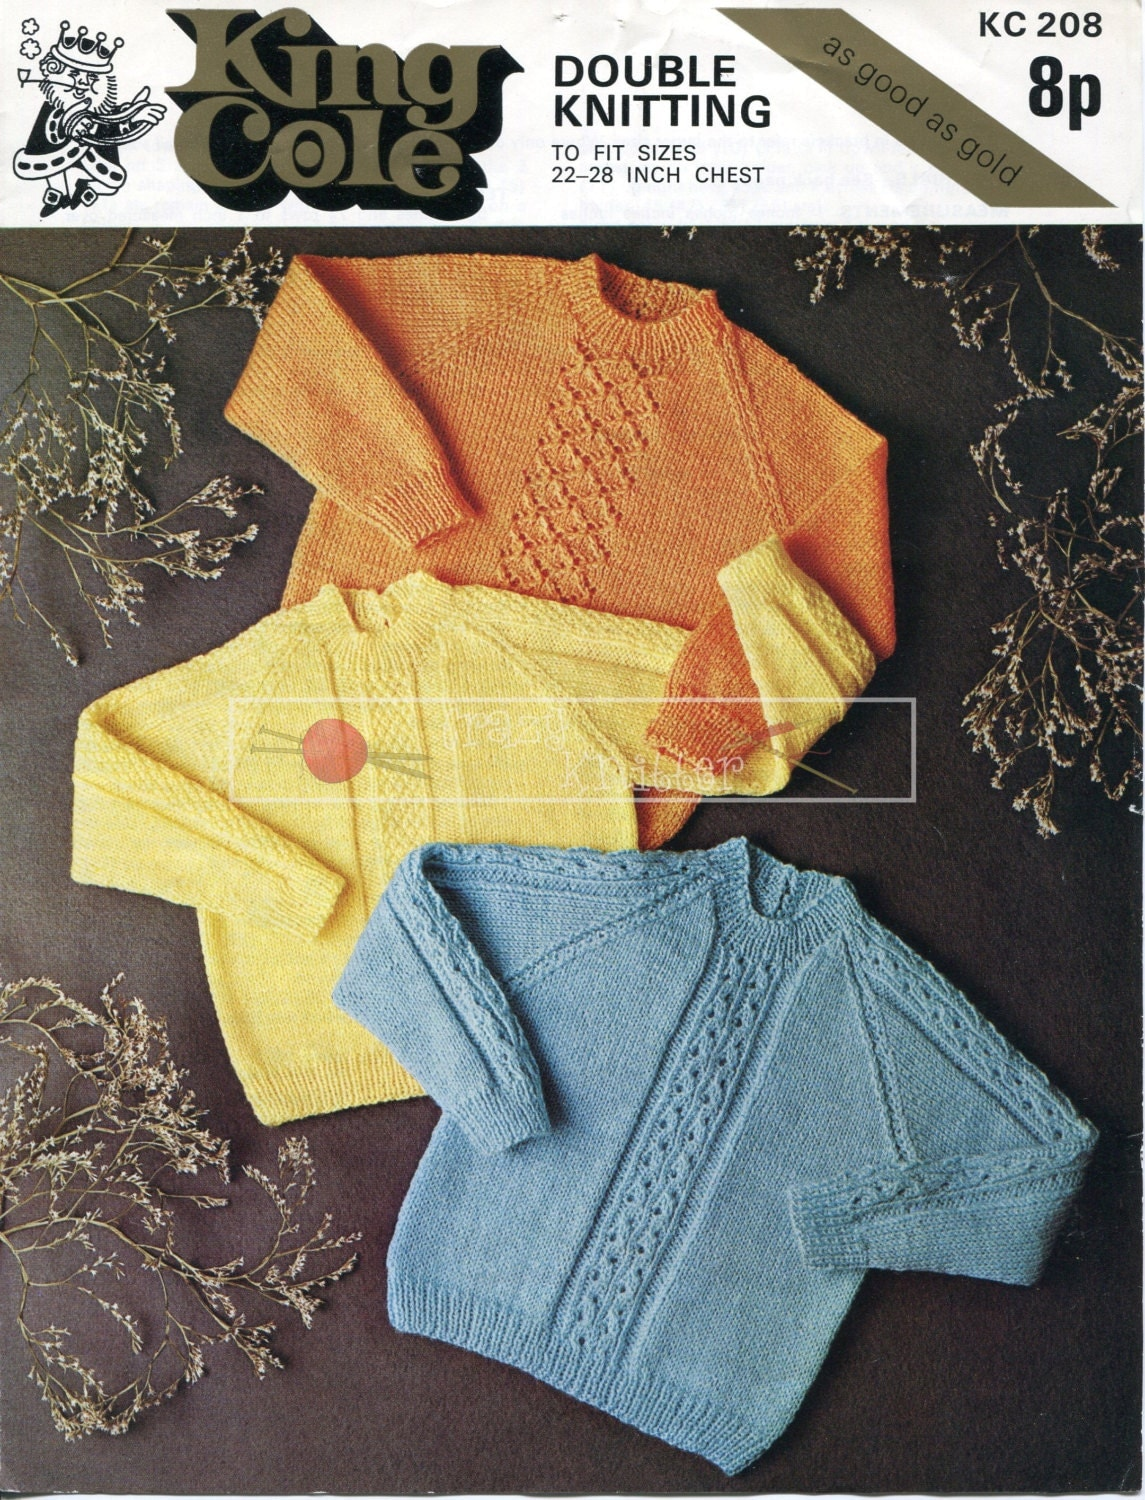 King Cole Knitting Patterns To Download : Child Sweaters DK 22-28ins. King Cole KC 208 Knitting Pattern PDF instant dow...